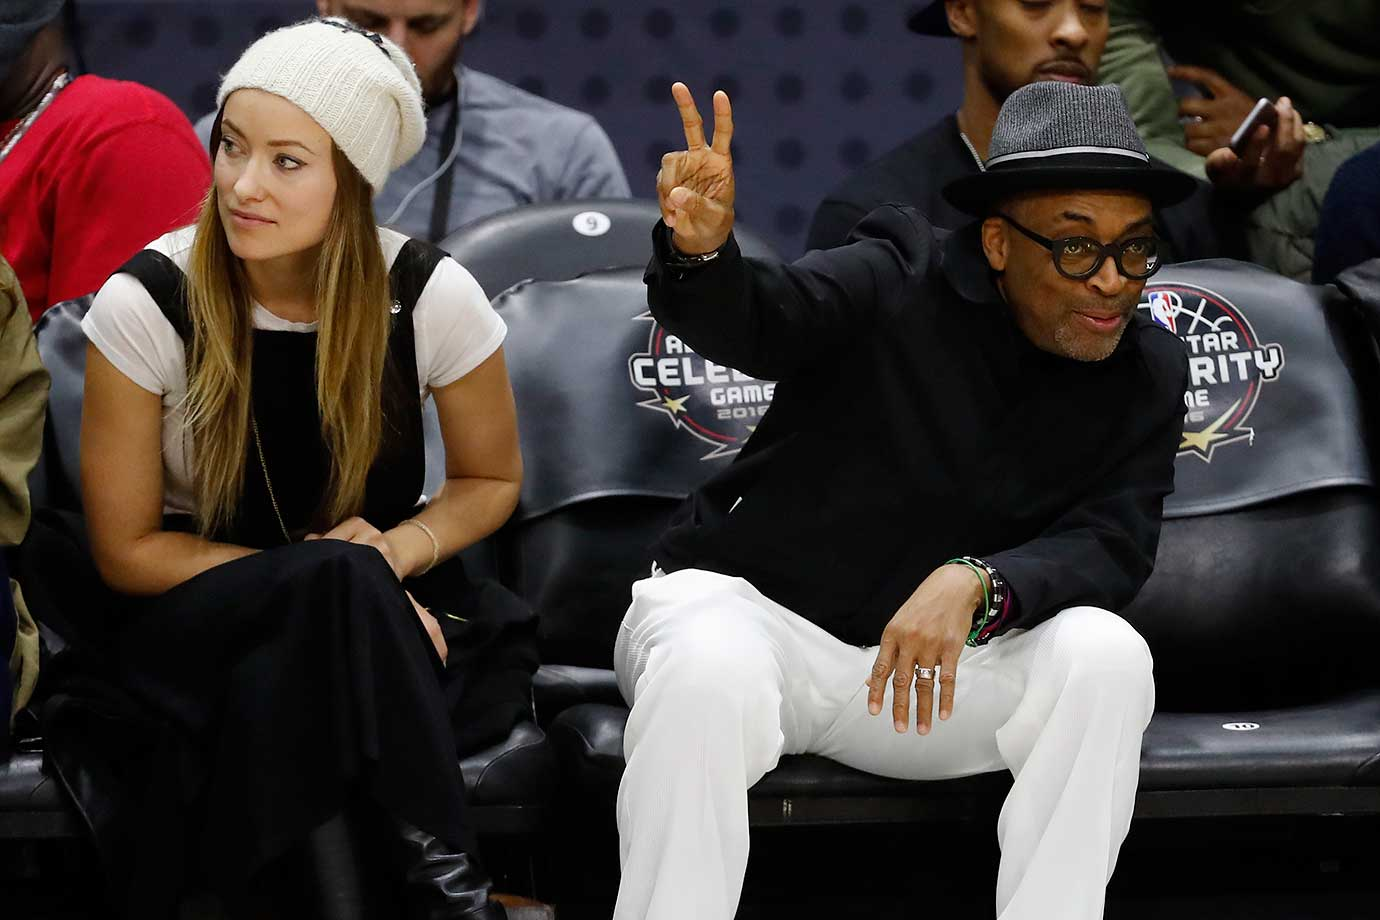 Sitting by actress Olivia Wilde, film director Spike Lee waves during the celebrity game at NBA All-Star weekend in Toronto.